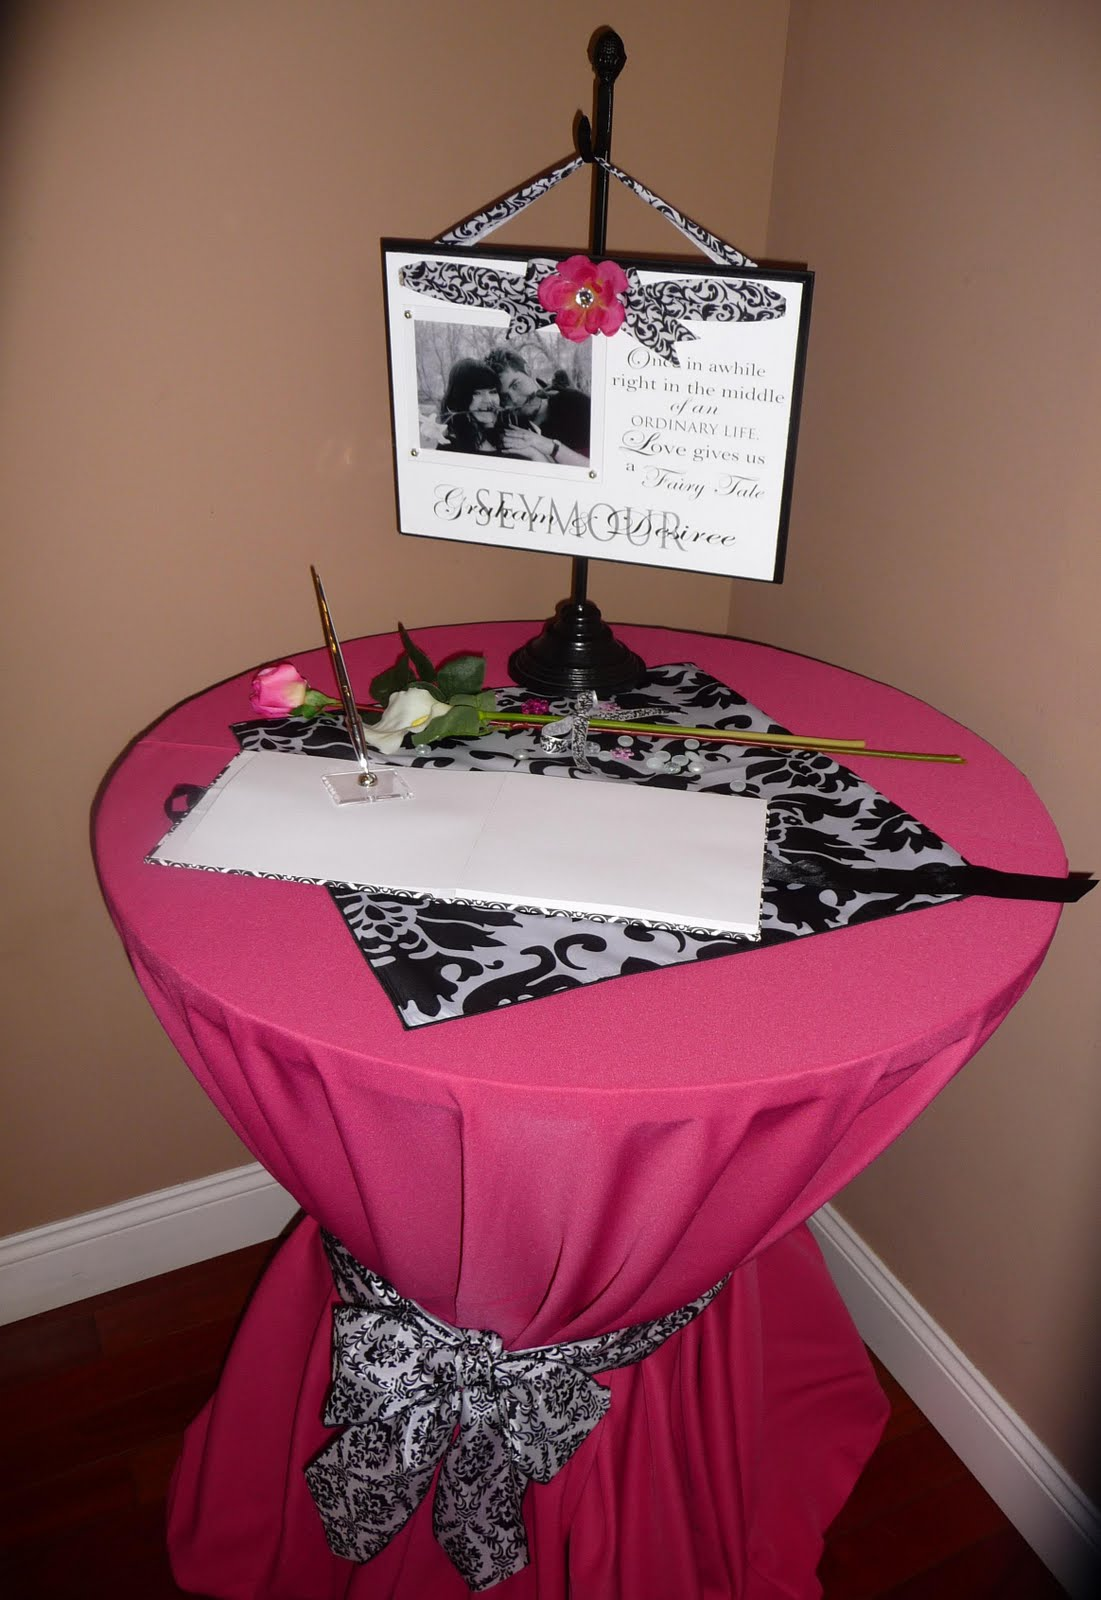 Cher's Signs by Design: Personalized Wedding Gifts/ Decorations